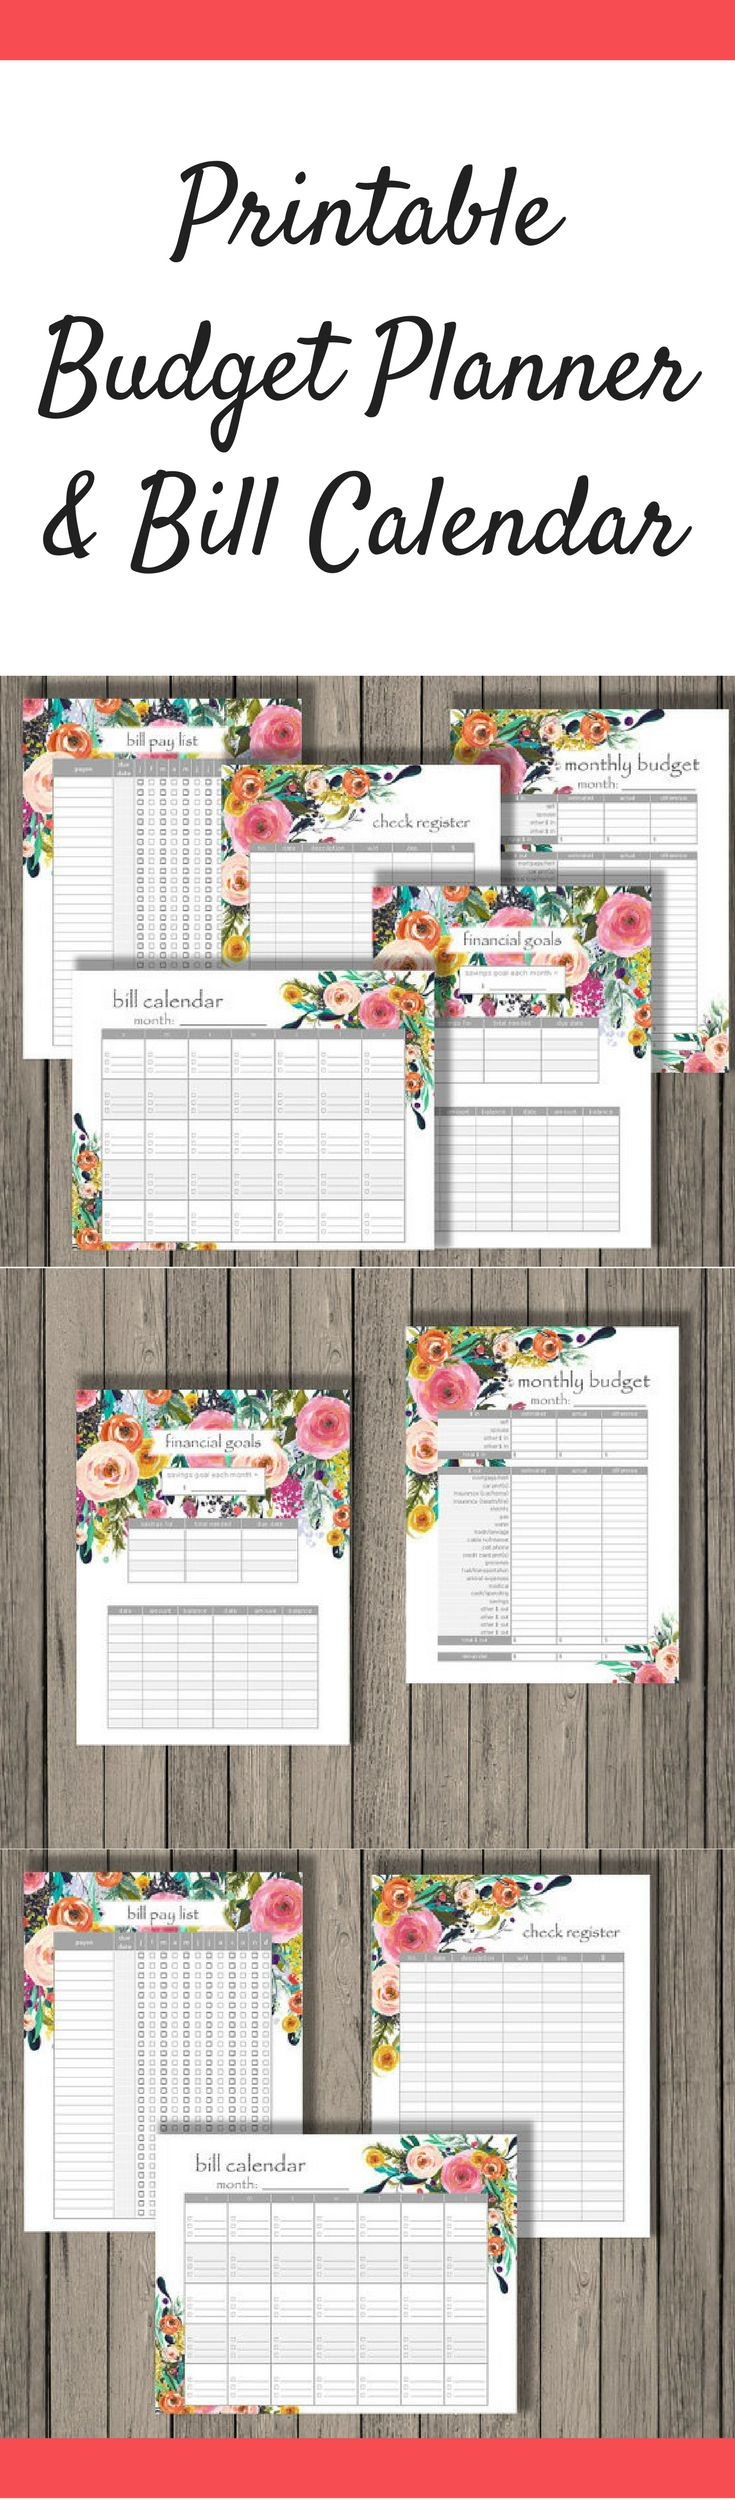 Printable Budgeting Planner and Bill Pay Calendar to track your finance and help you manage your money better. #ad #budget #budgeting #planner #planning #planneraddict #plannerlove #plannercommunity #printable